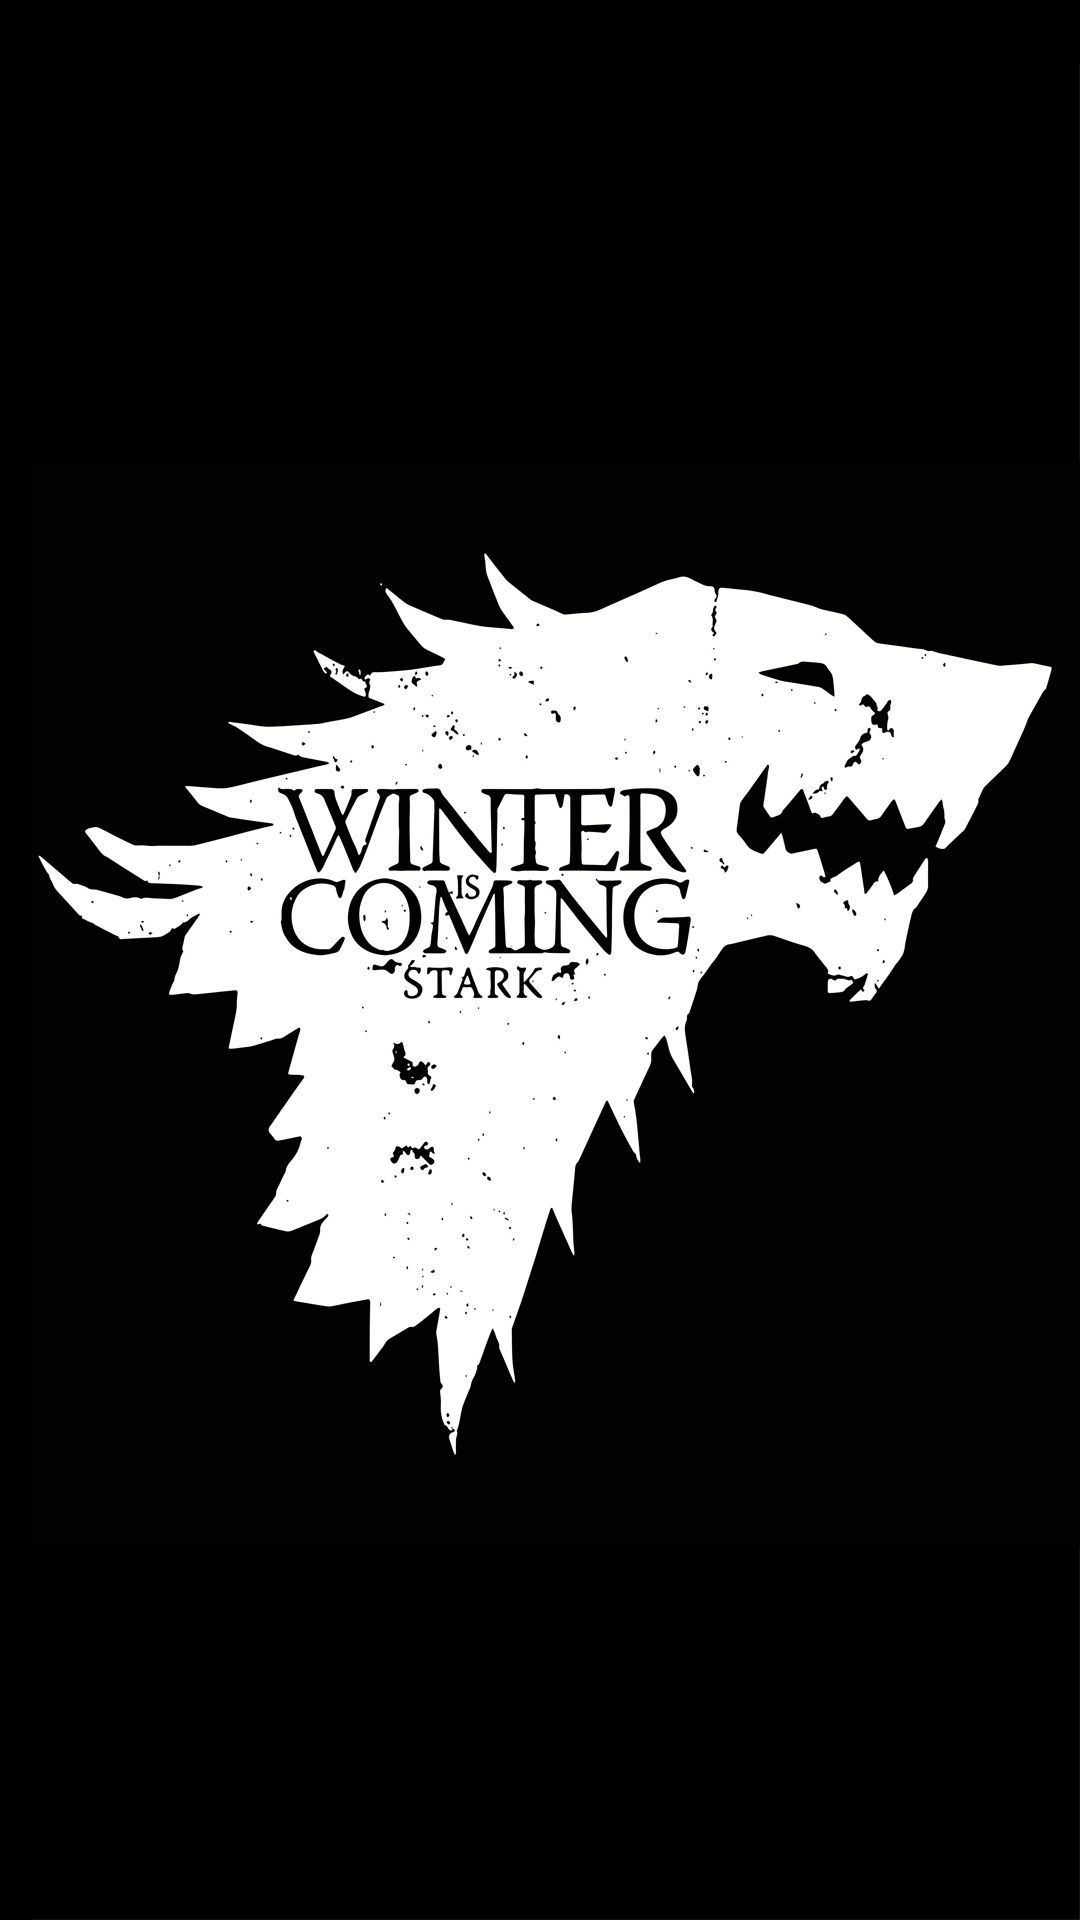 Game Of Thrones Wallpapers Iphone Game Of Thrones Poster Game Of Thrones Game Of Thrones Winter